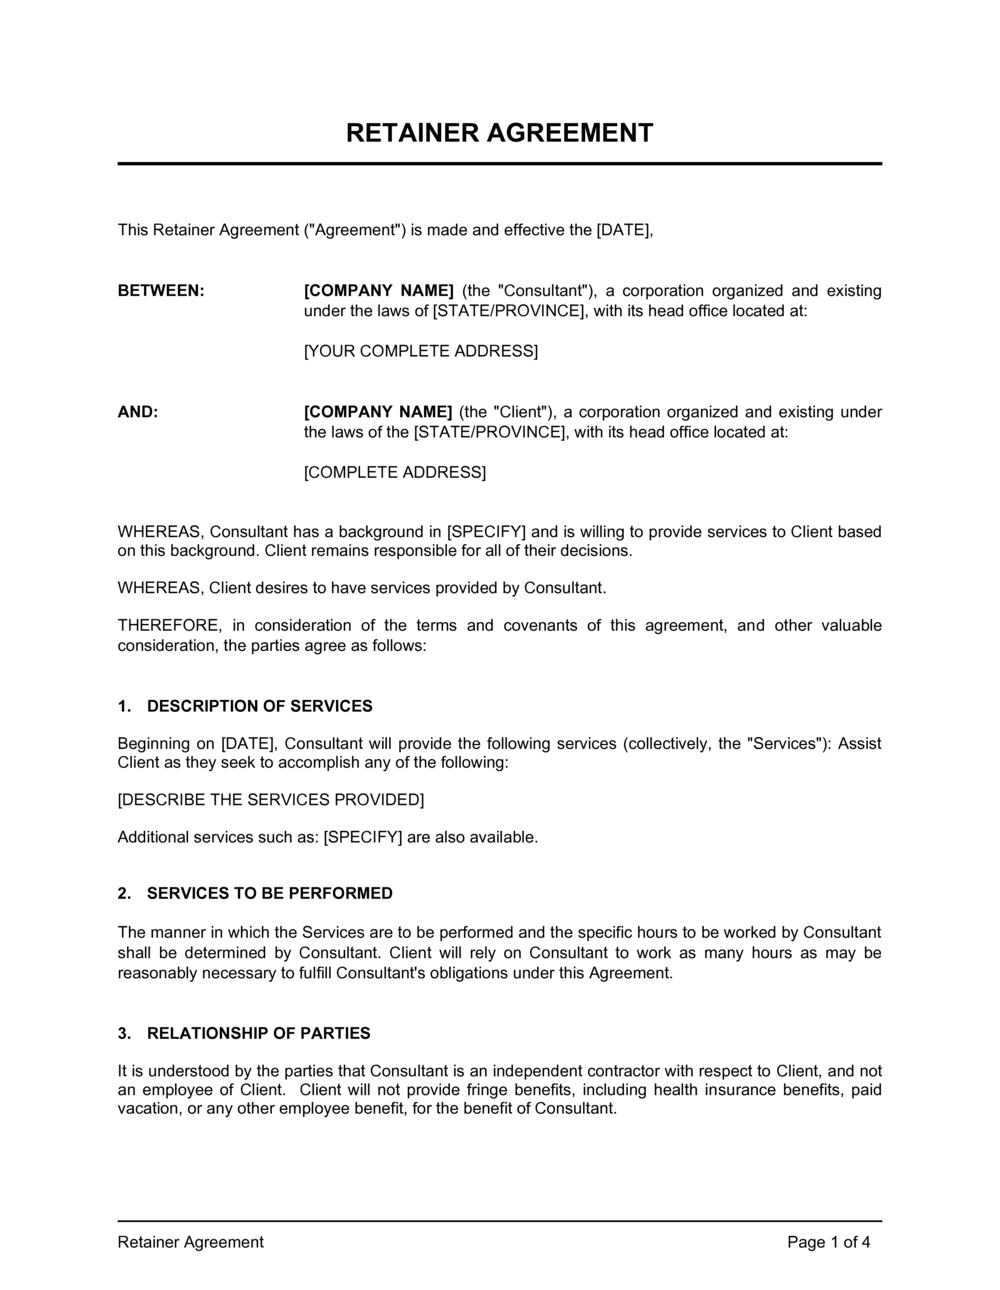 Business-in-a-Box's Retainer Agreement Template